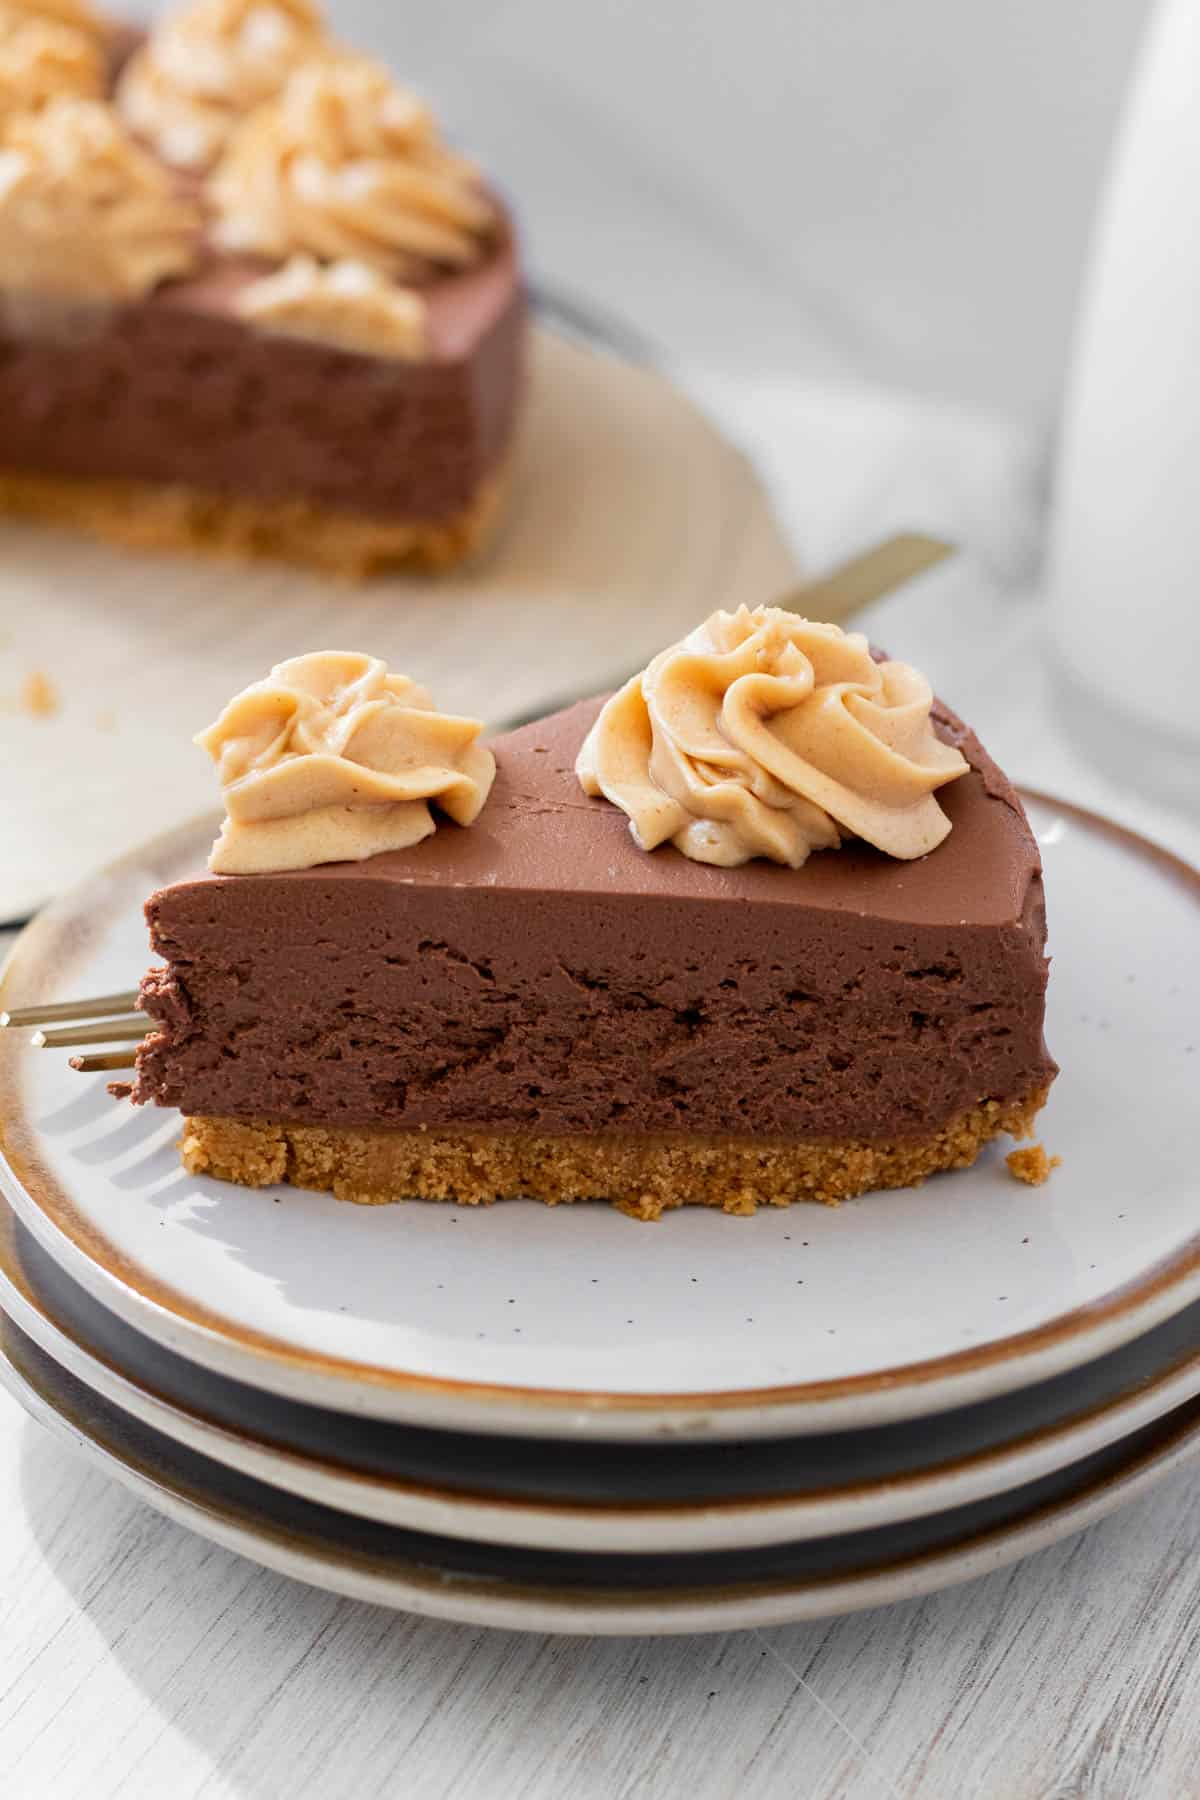 slice of chocolate peanut butter no-bake cheesecake on a white plate with a golf fork